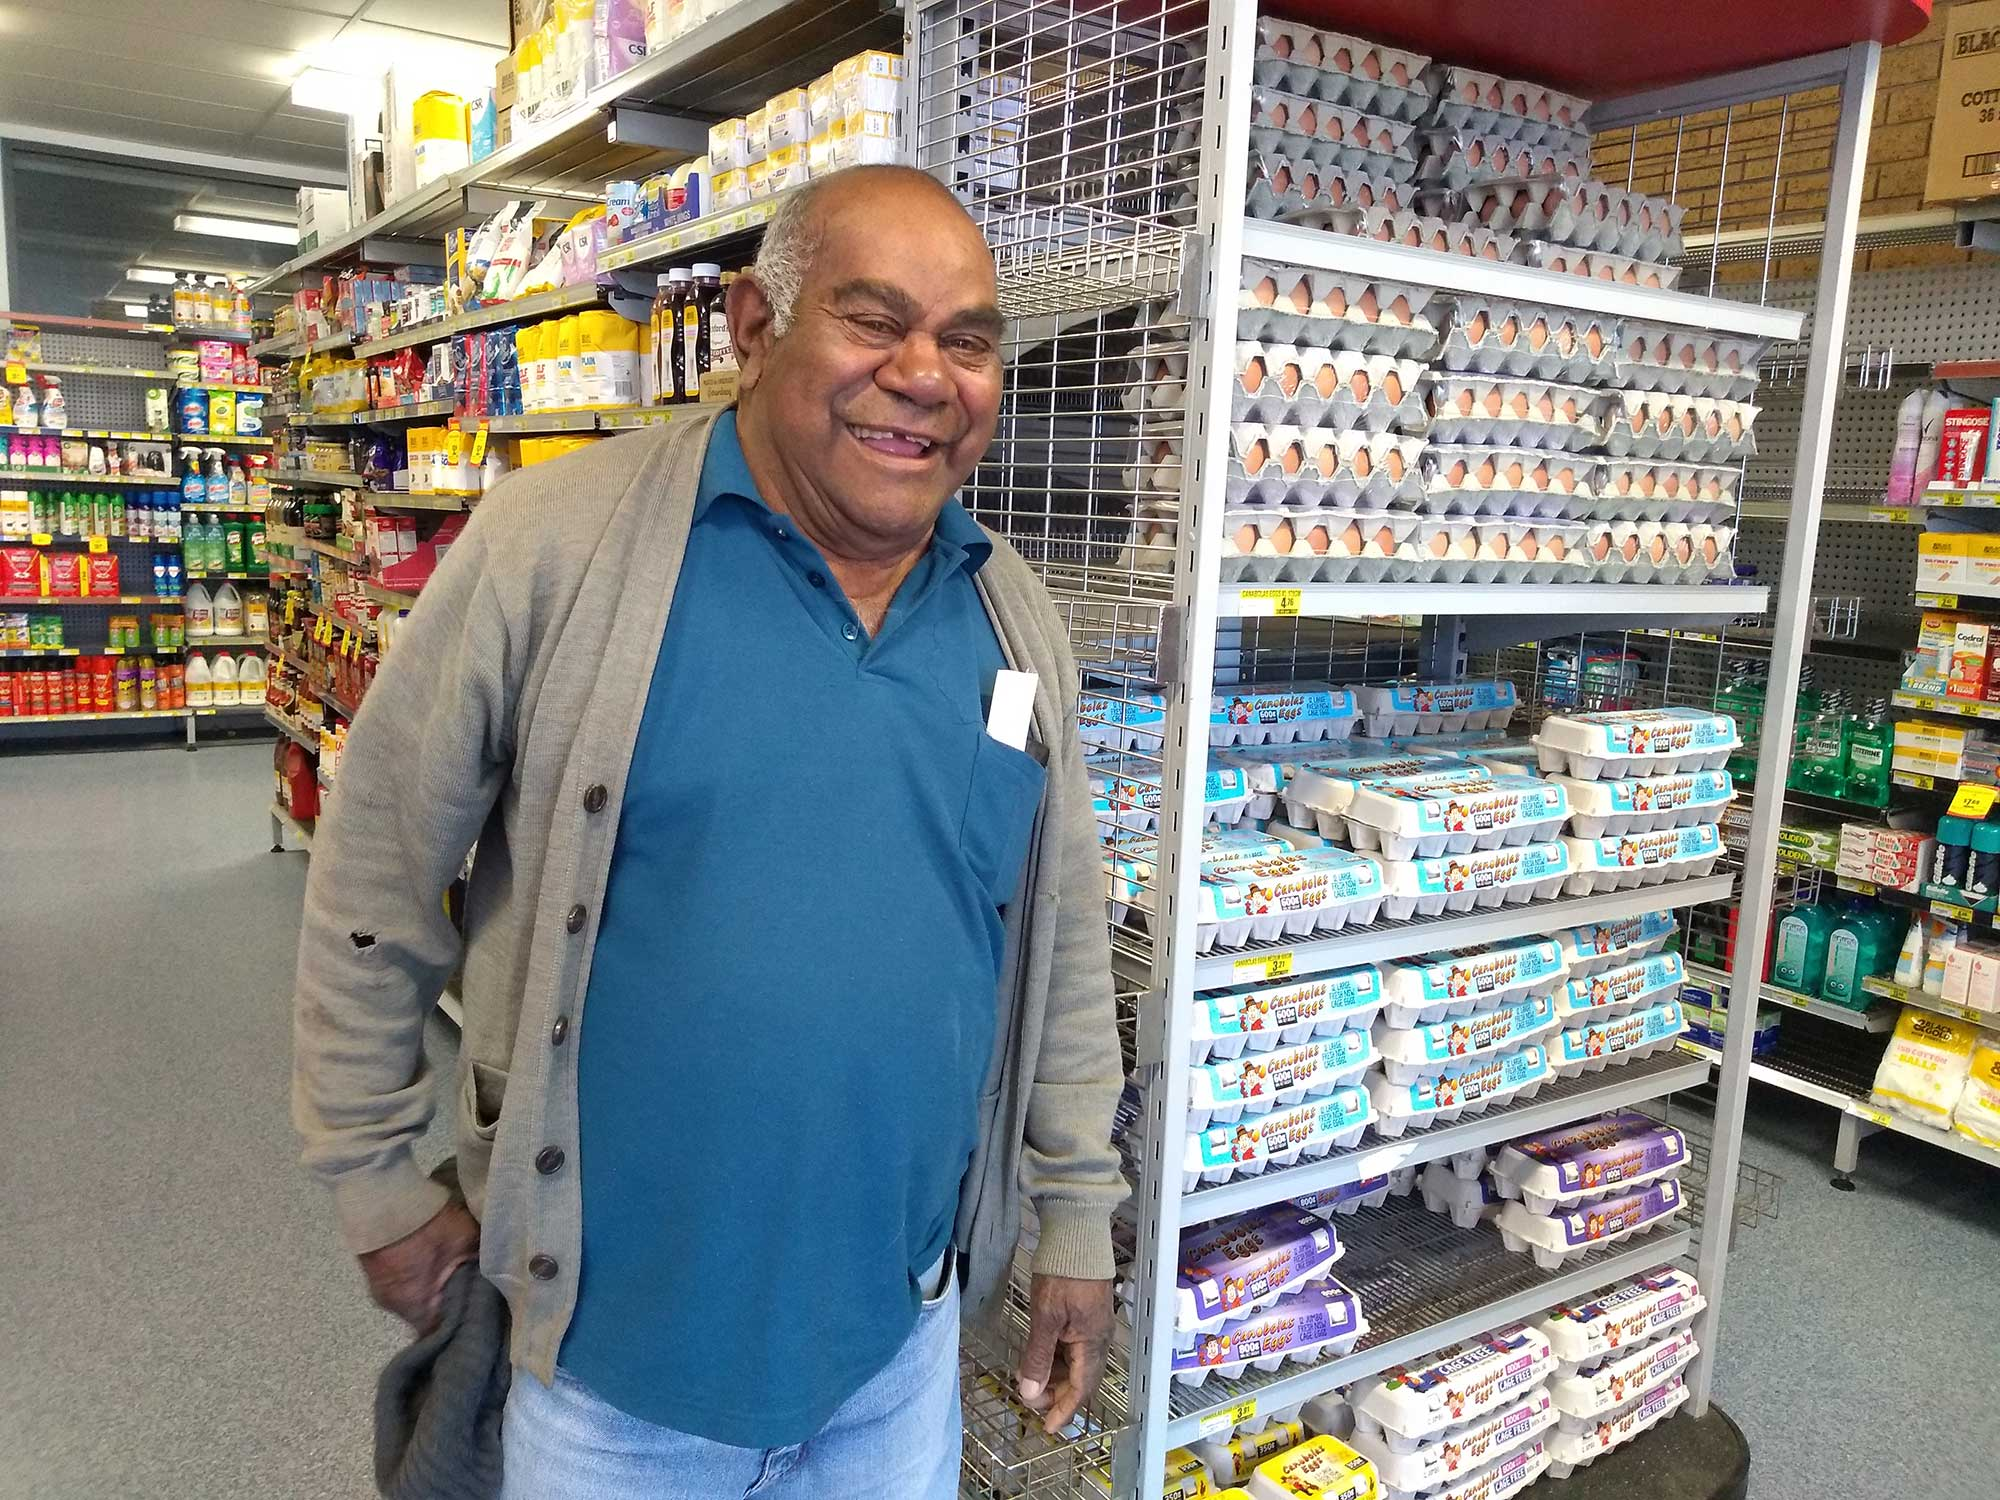 DEG's Clem Dodd was pleased to view Walgett's temporary supermarket opened 10 August 2019.